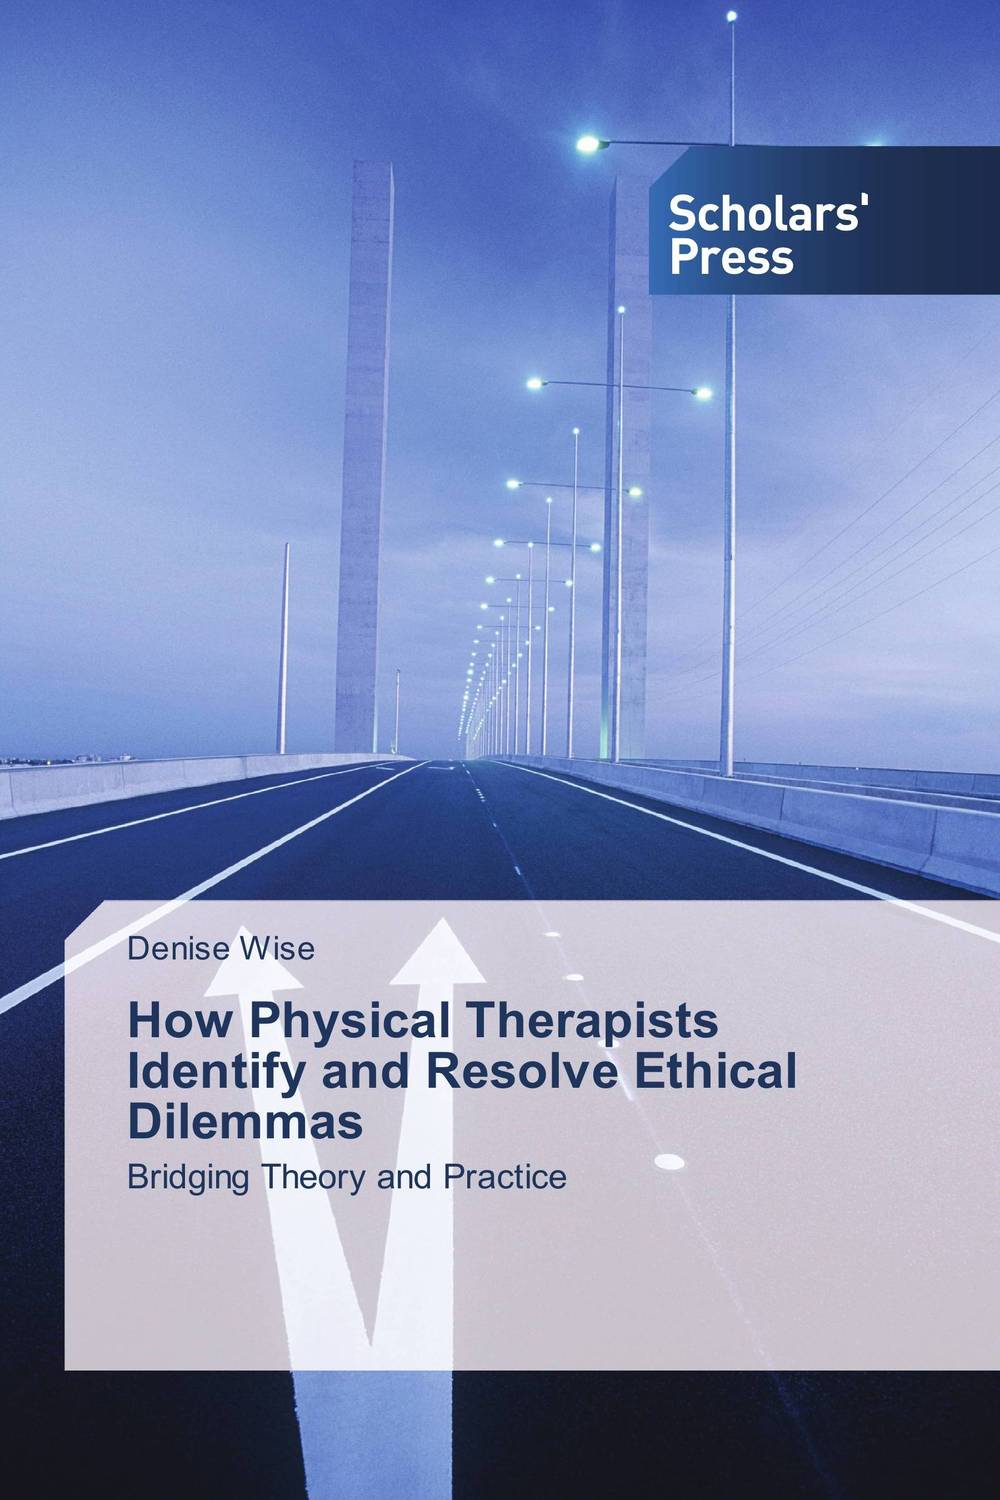 How Physical Therapists Identify and Resolve Ethical Dilemmas info gap decision theory